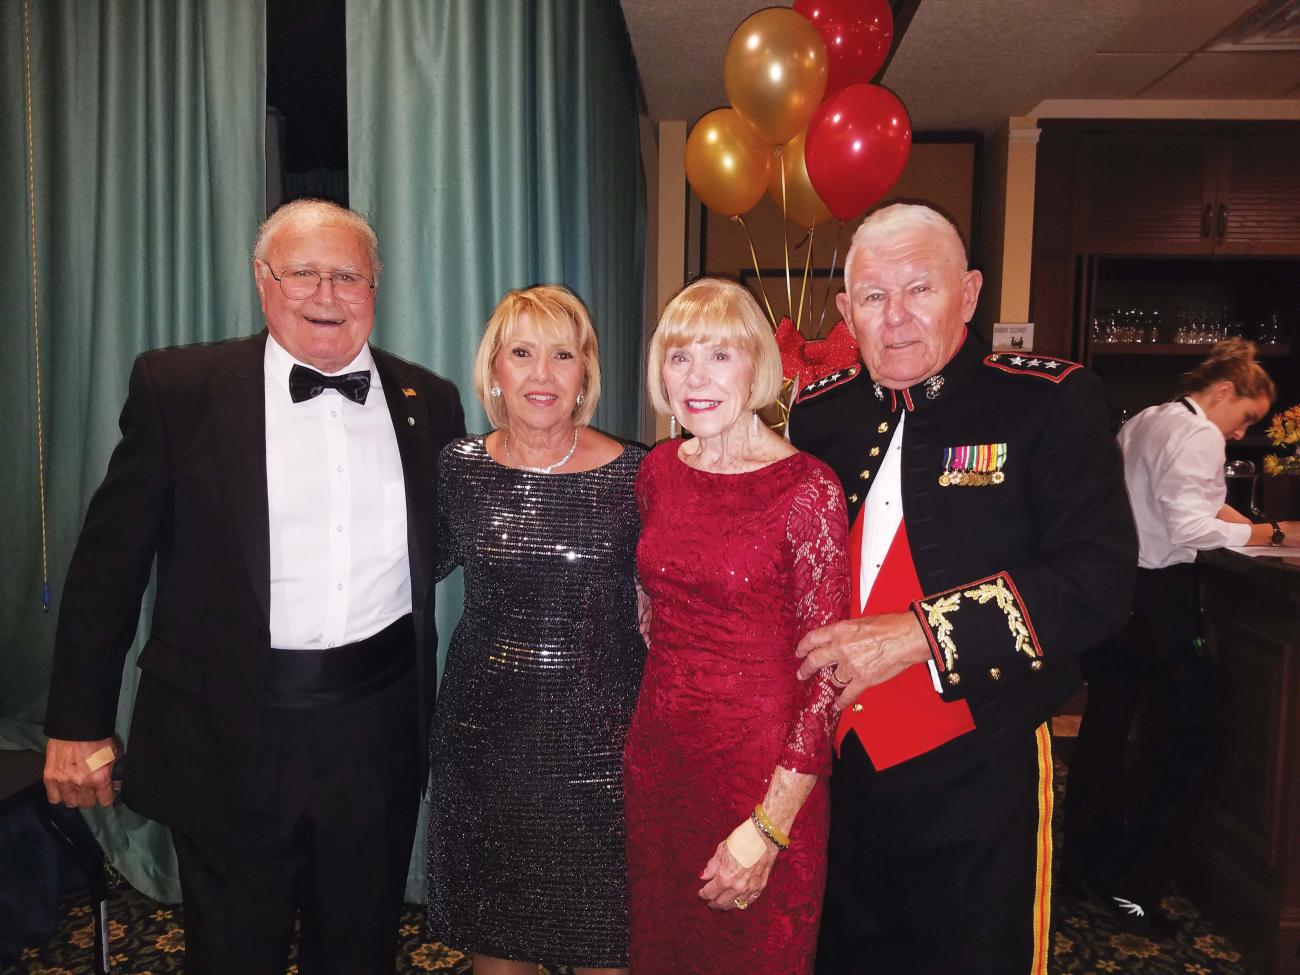 Norma '57 and Lt. Gen. Bob Winglass '57, USMC Ret. were joined by  Bob Pataky '57 and his wife, Nancy, at the Military Ball held at Indian River Colony Club in Viera, Fla.